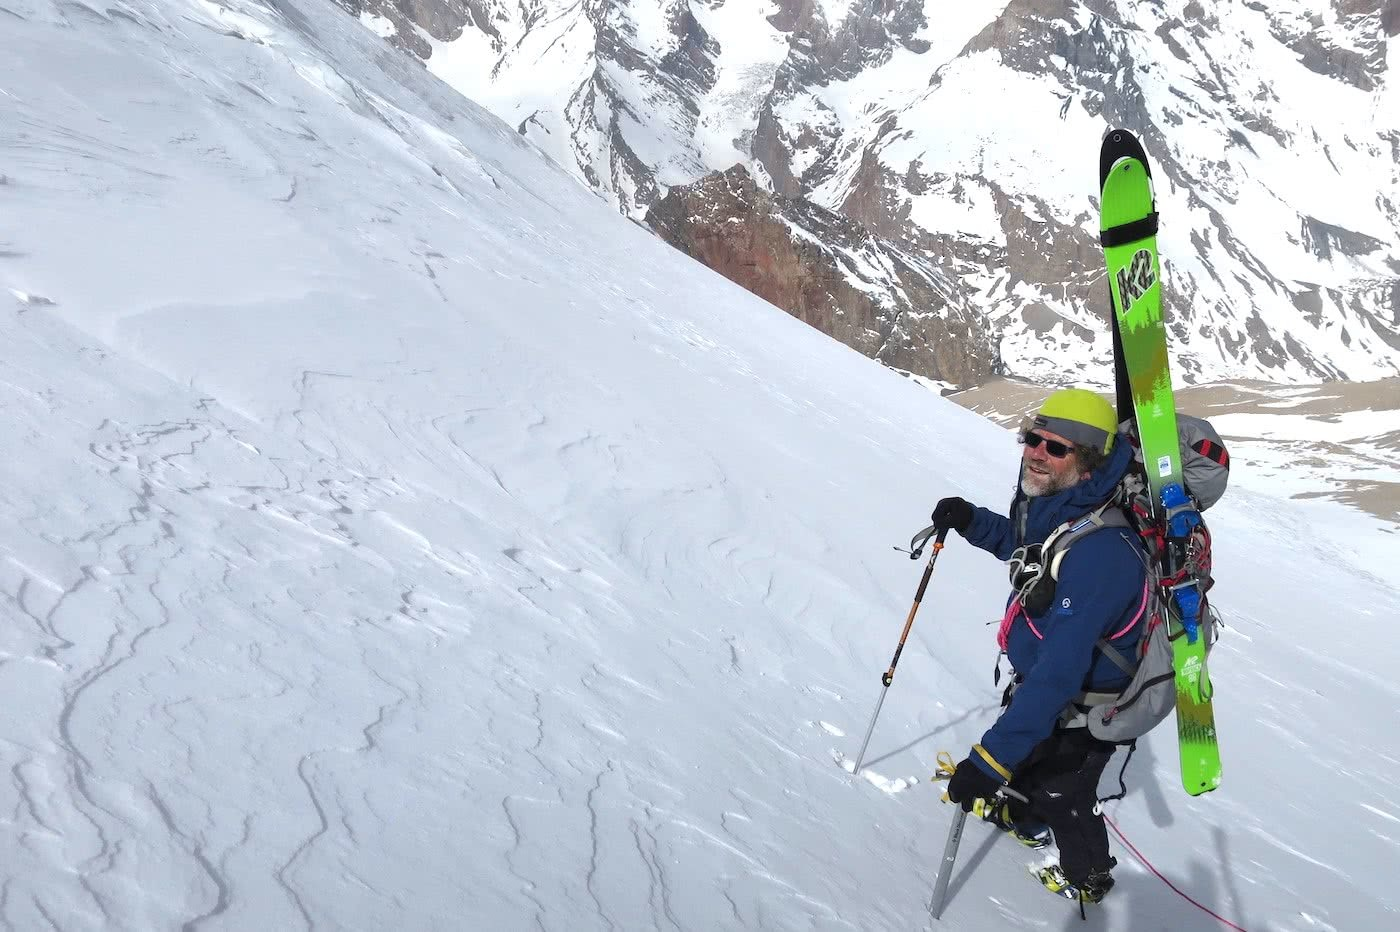 A Life Of Adventure And Now, Politics? // Interview With Huw Kingston, Huw Kingston, photo by Rich Emerson Fann Mountains, Tajikistan, ski mountaineering